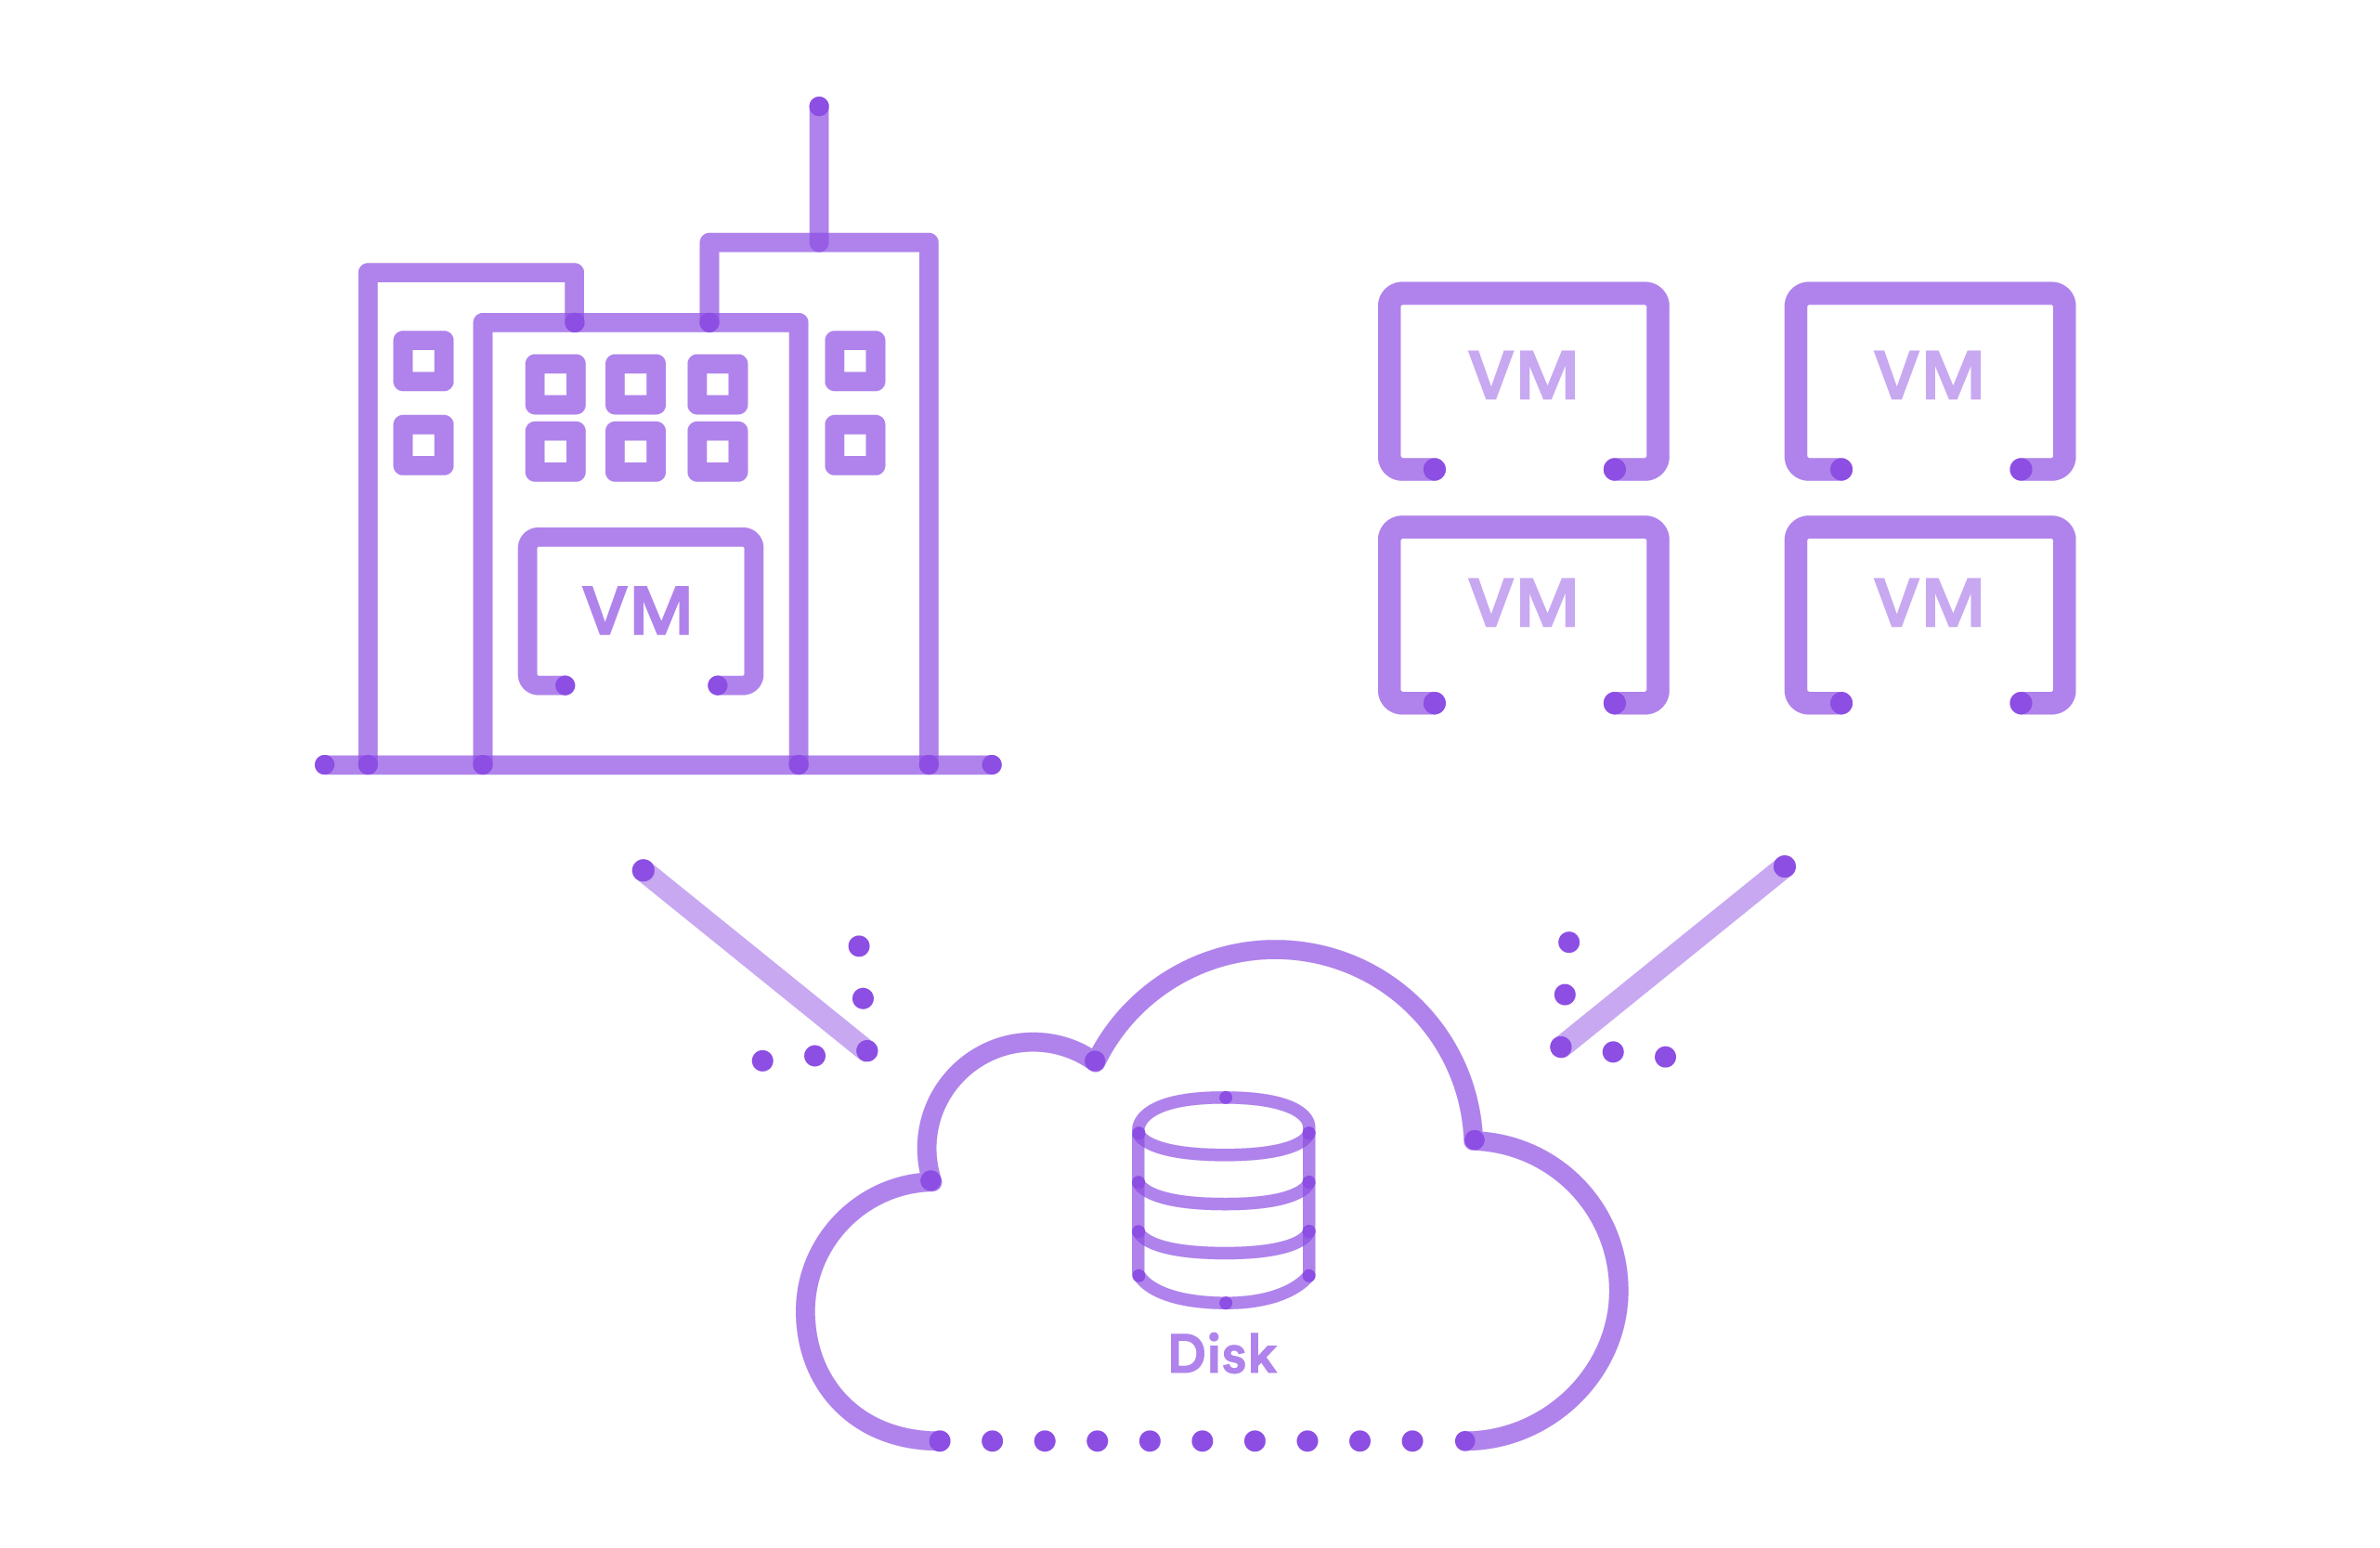 Backup to the Cloud diagram